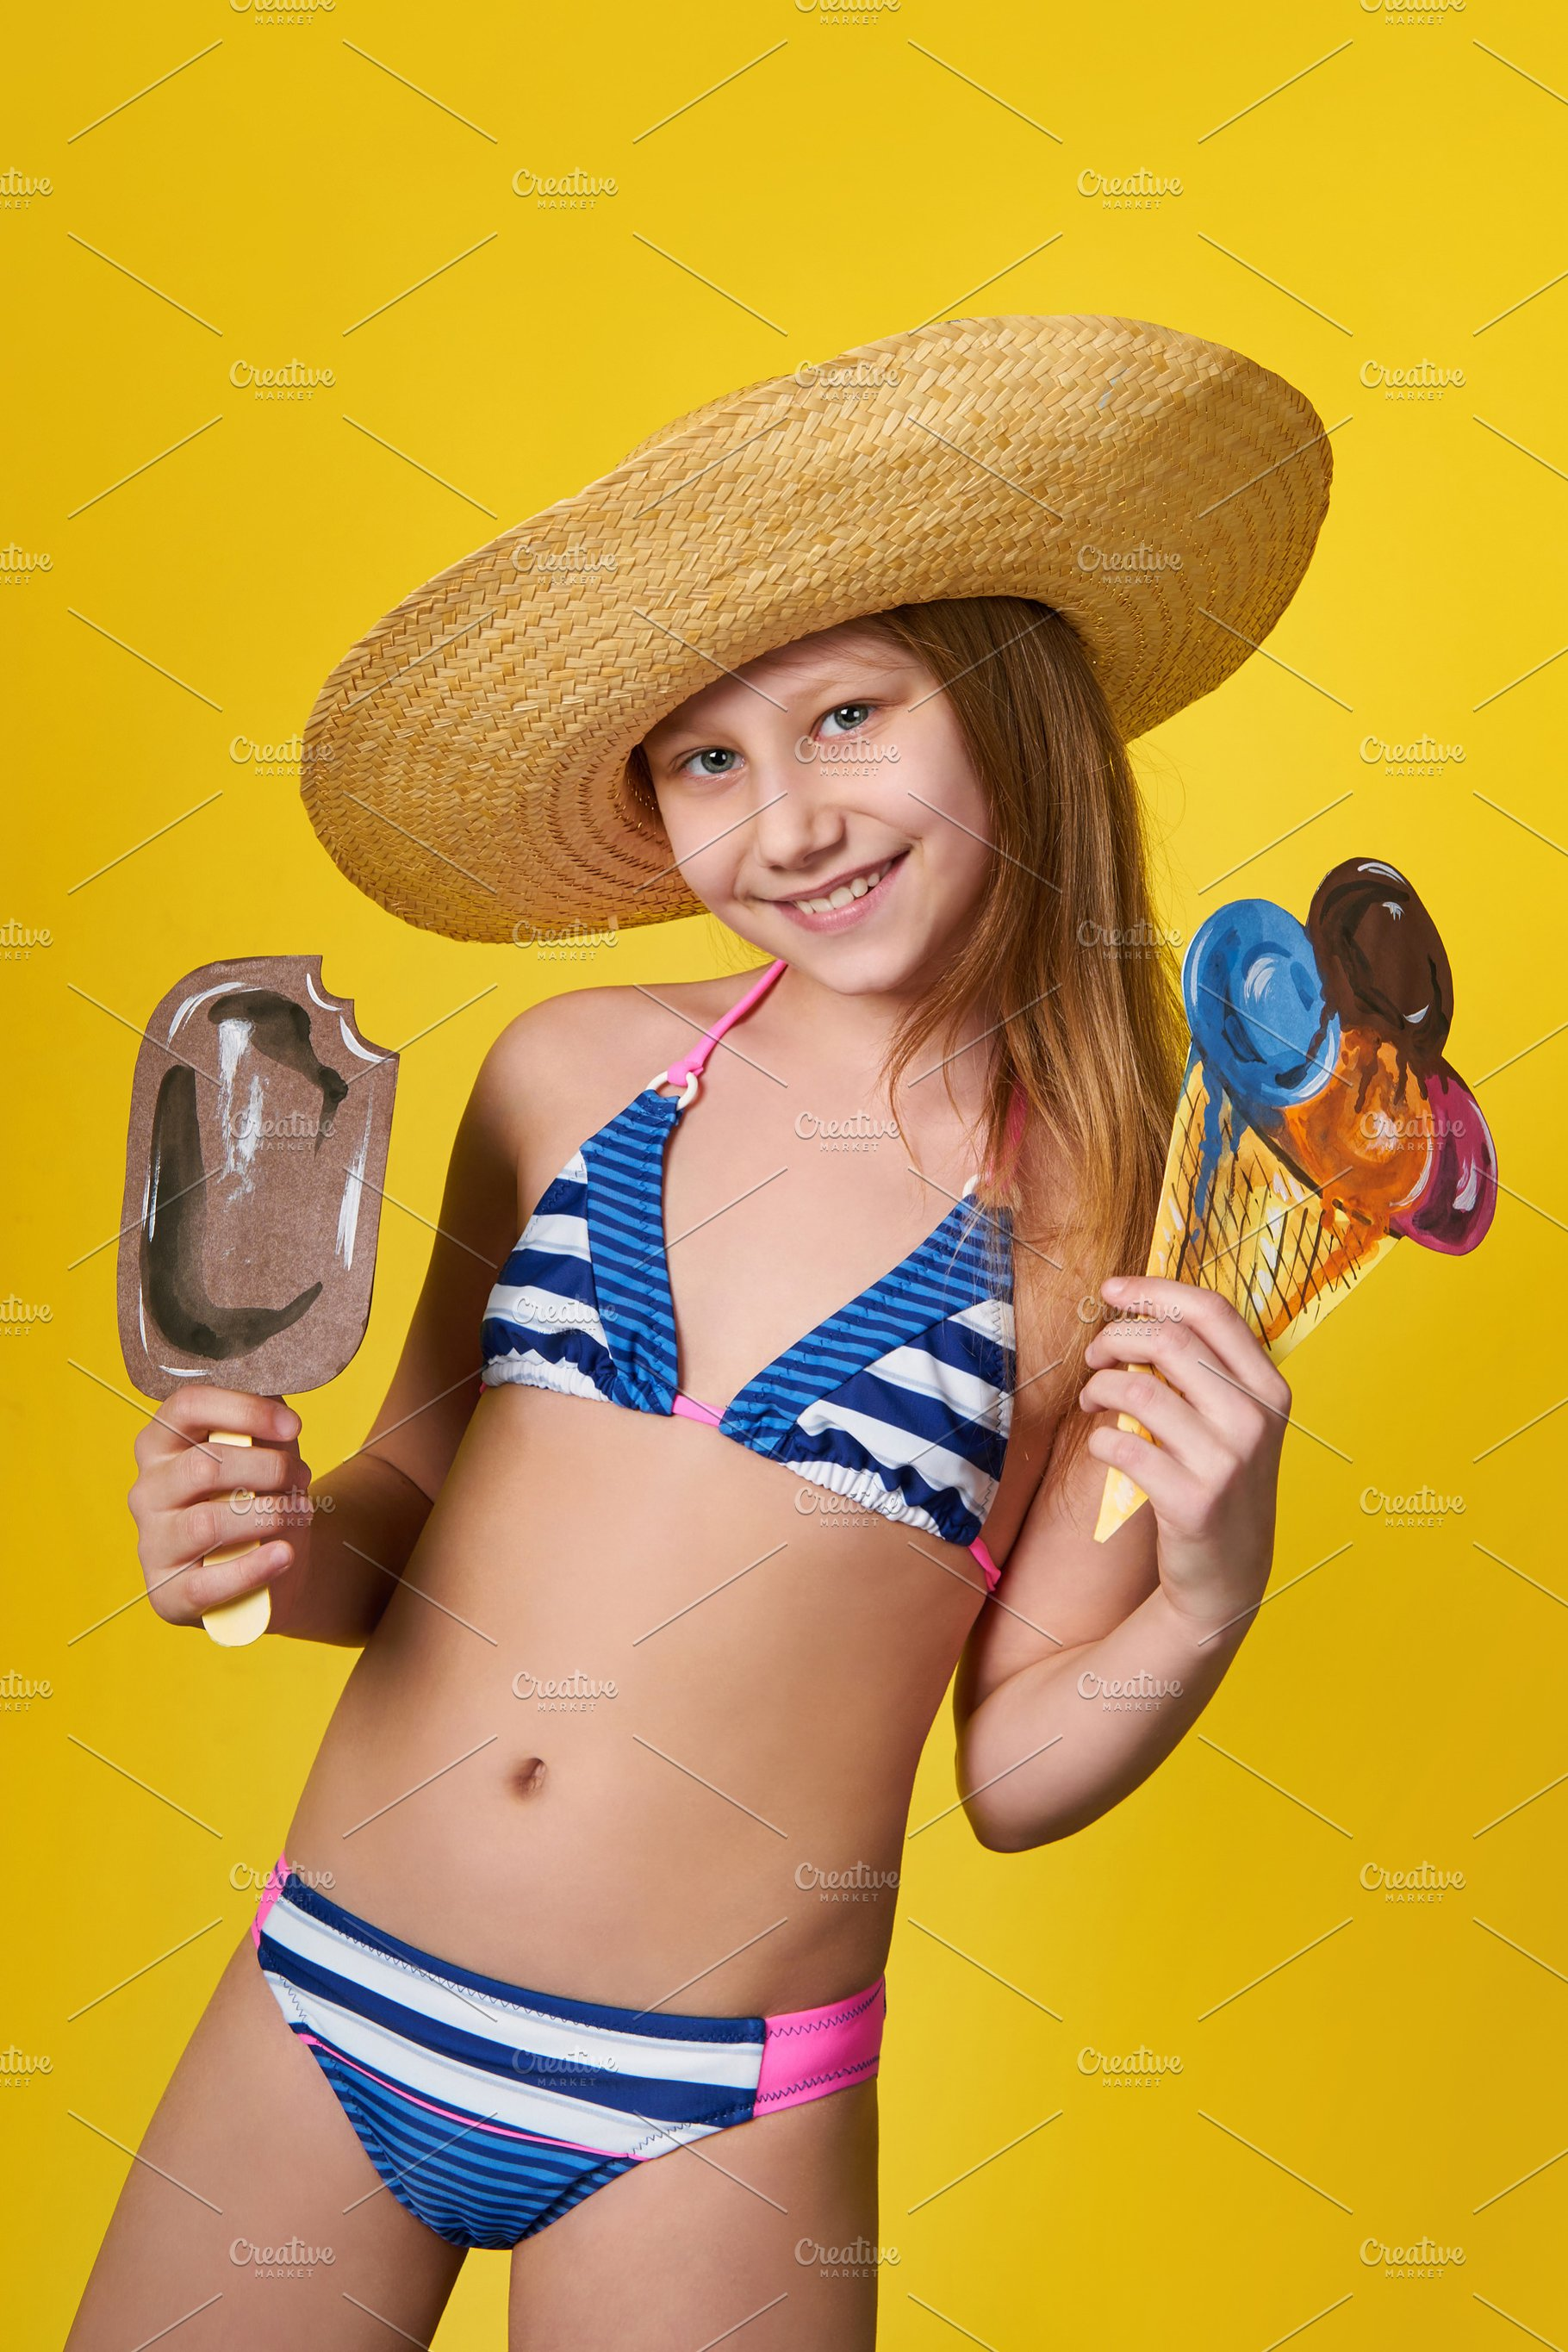 d36cb9df6e Cute girl wearing swimsuit holds in hand image ice cream. Cheerful ...